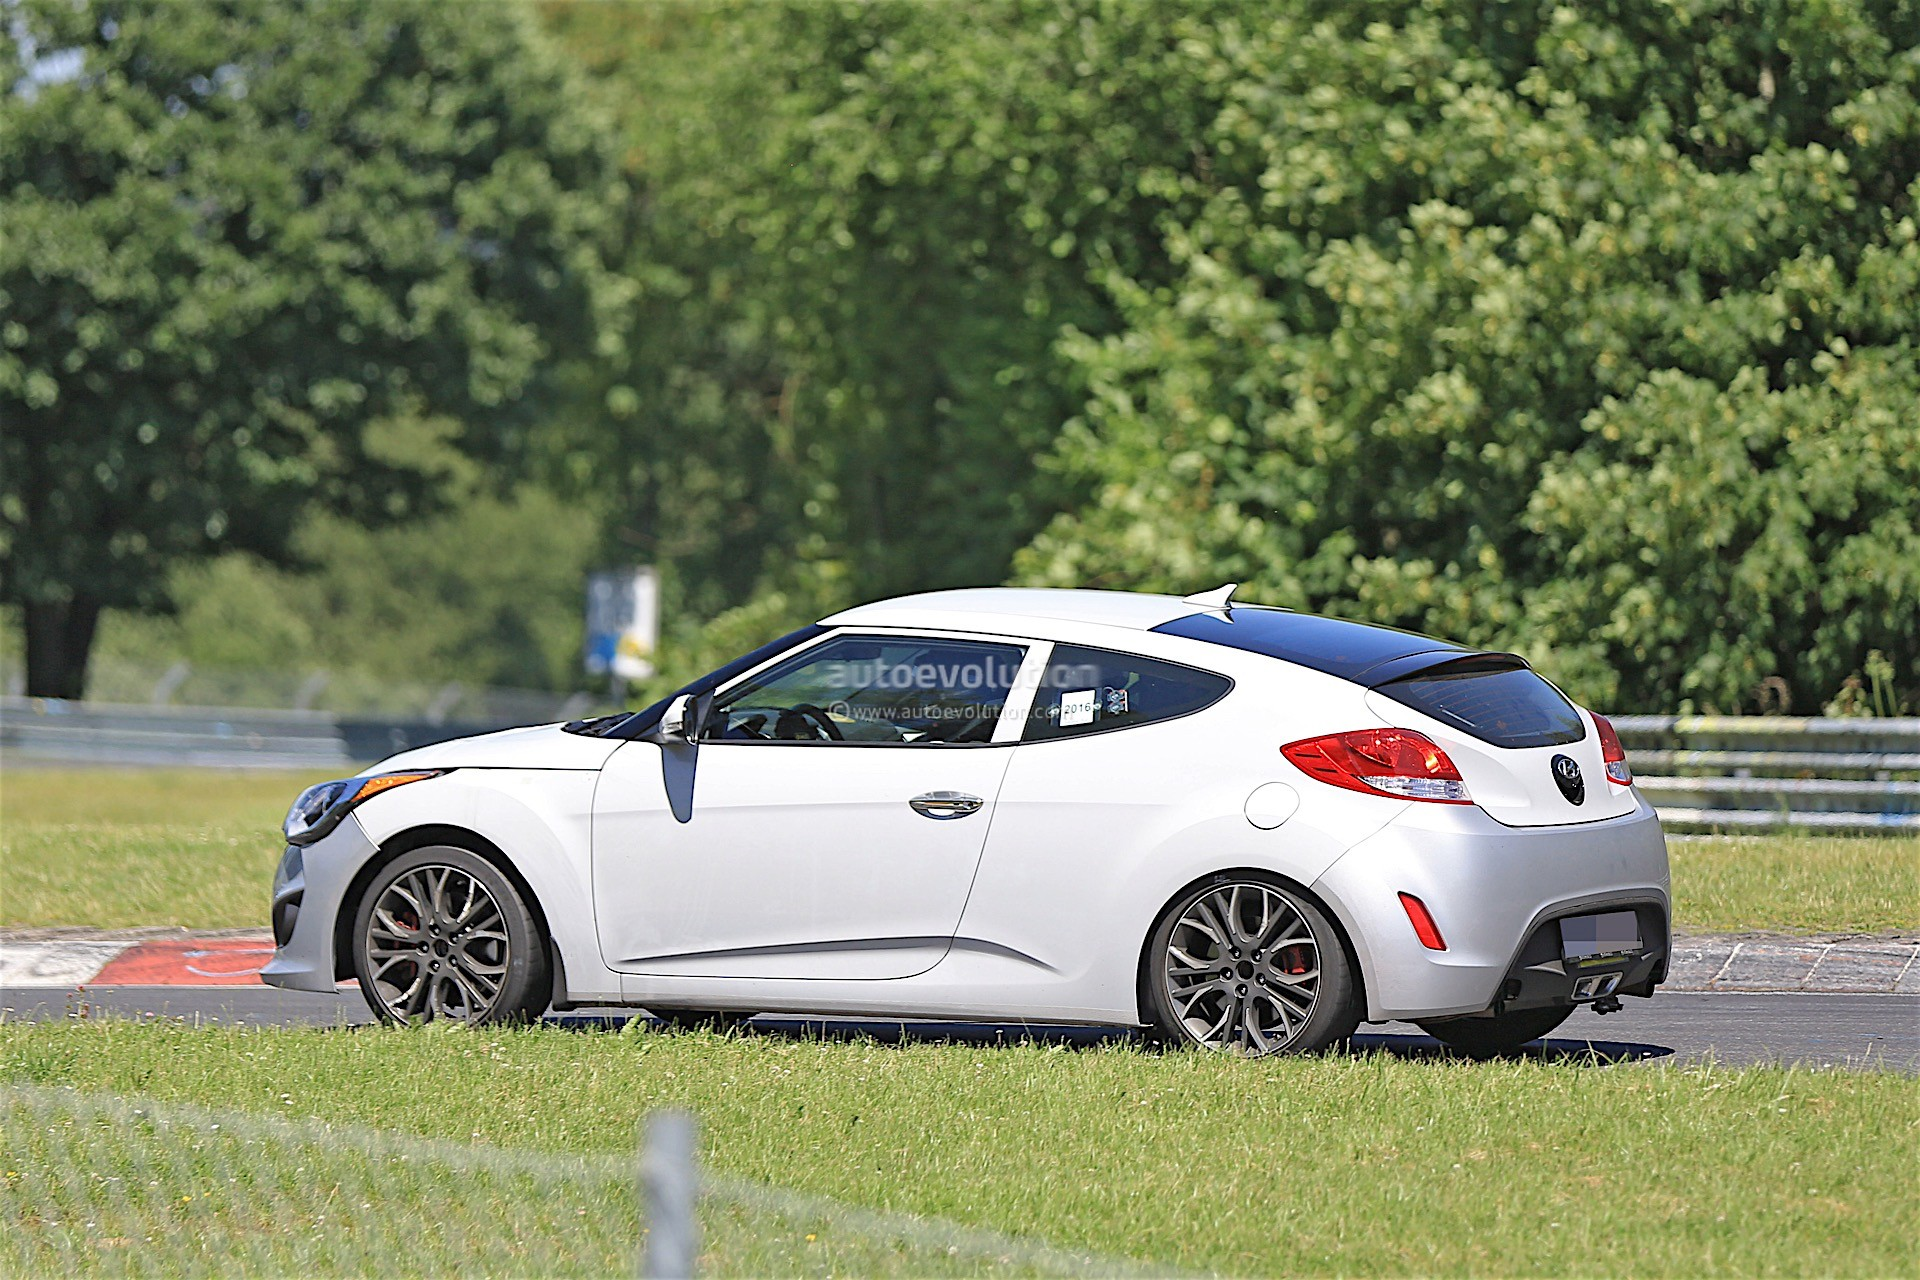 Hyundai Rm16 >> 2018 Hyundai Veloster Spied, Could Get Independent Rear Suspension - autoevolution